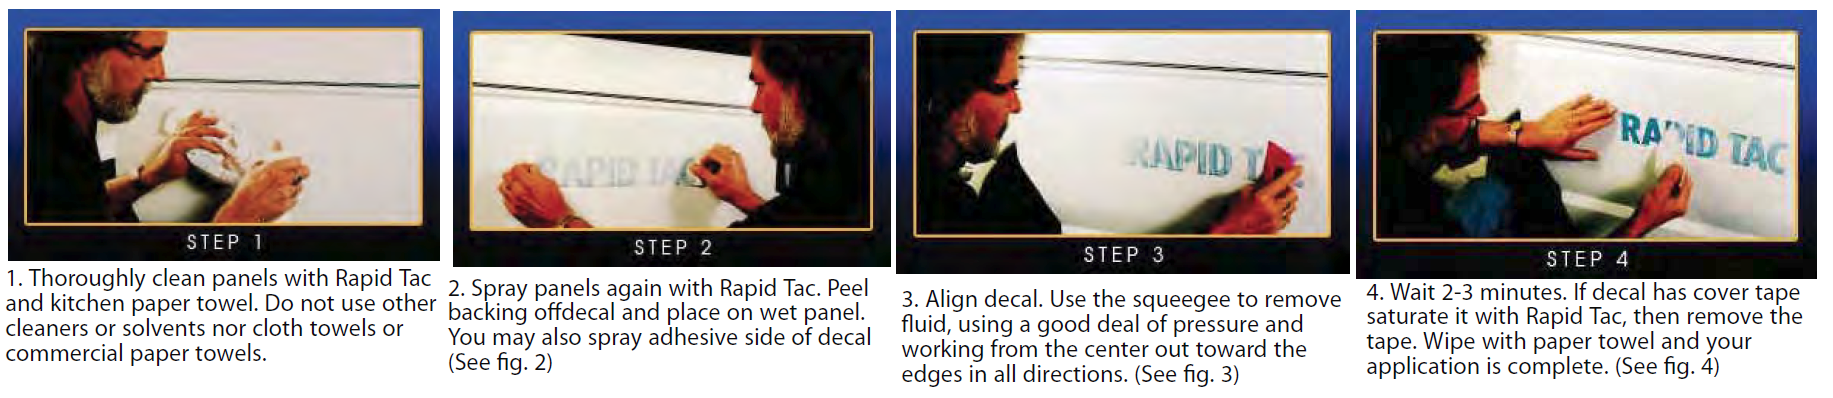 rapid tac directions - Rapid Tac Products - Application Fluid - Remover